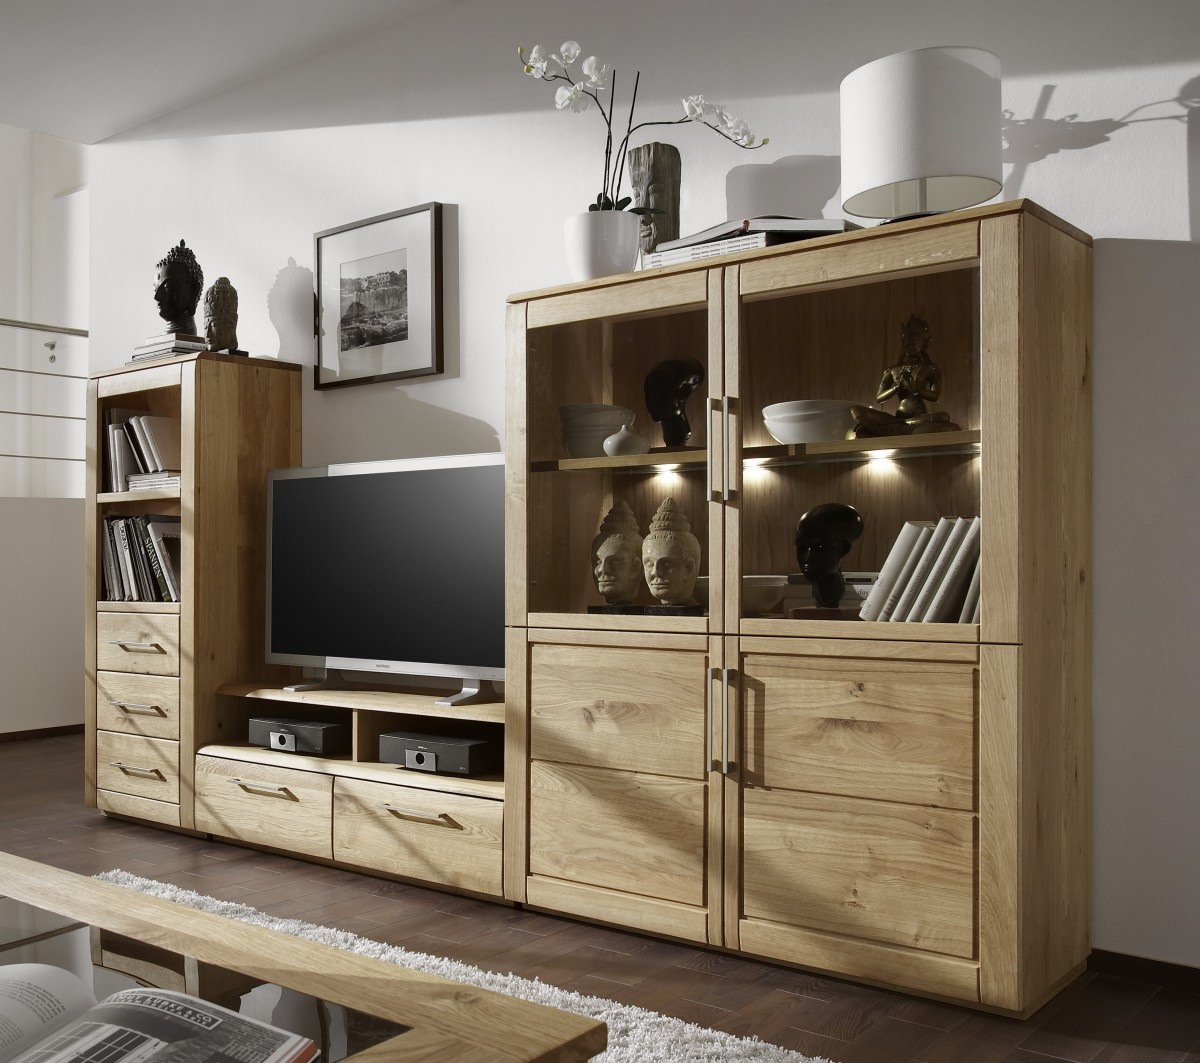 moderne fernsehwand im wohnzimmer ideen top. Black Bedroom Furniture Sets. Home Design Ideas